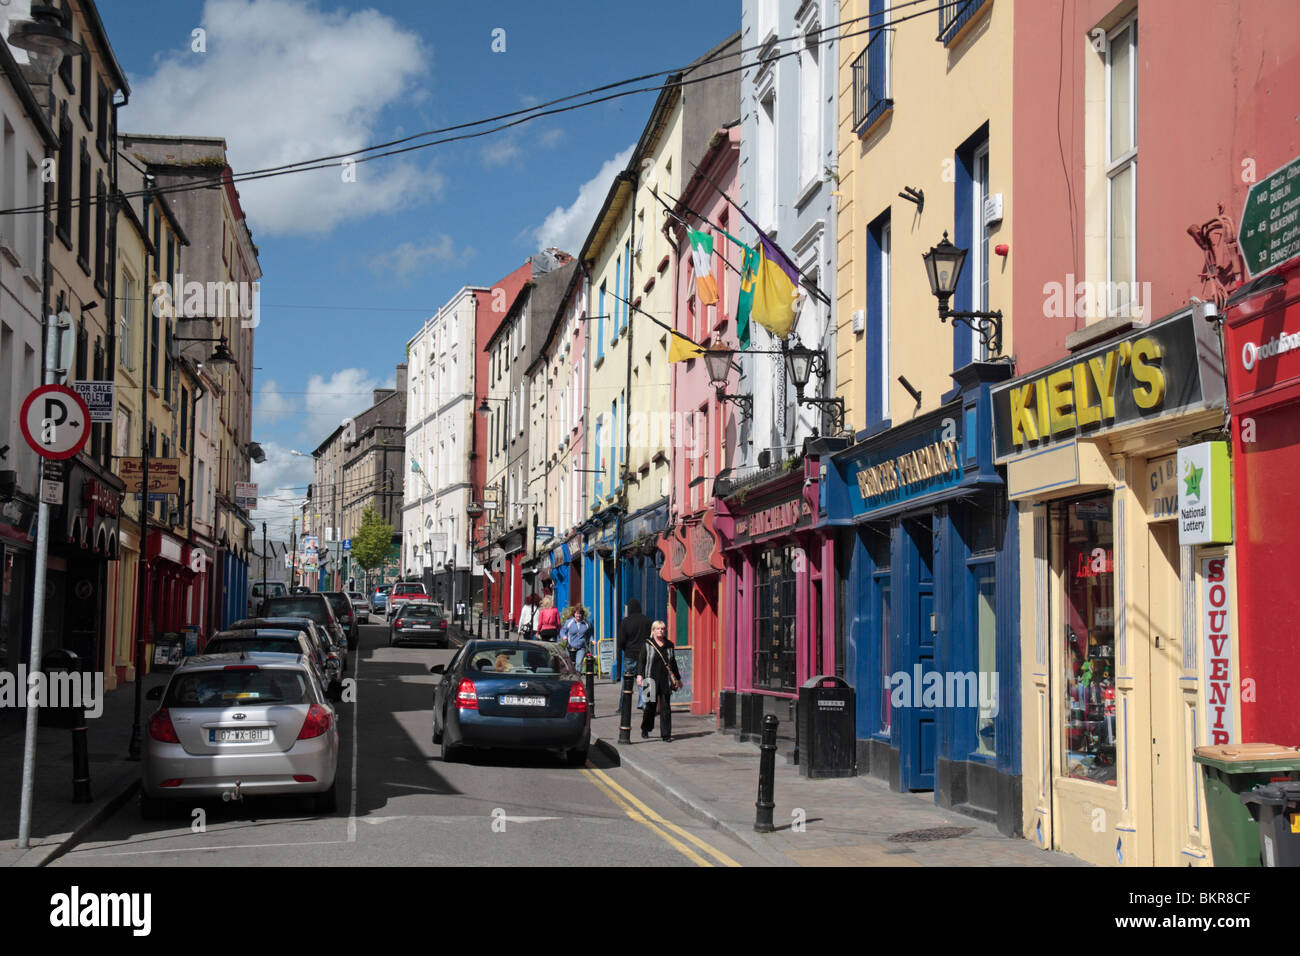 View showing the colourful shop fronts on North Street, New Ross Co Wexford, Ireland. - Stock Image